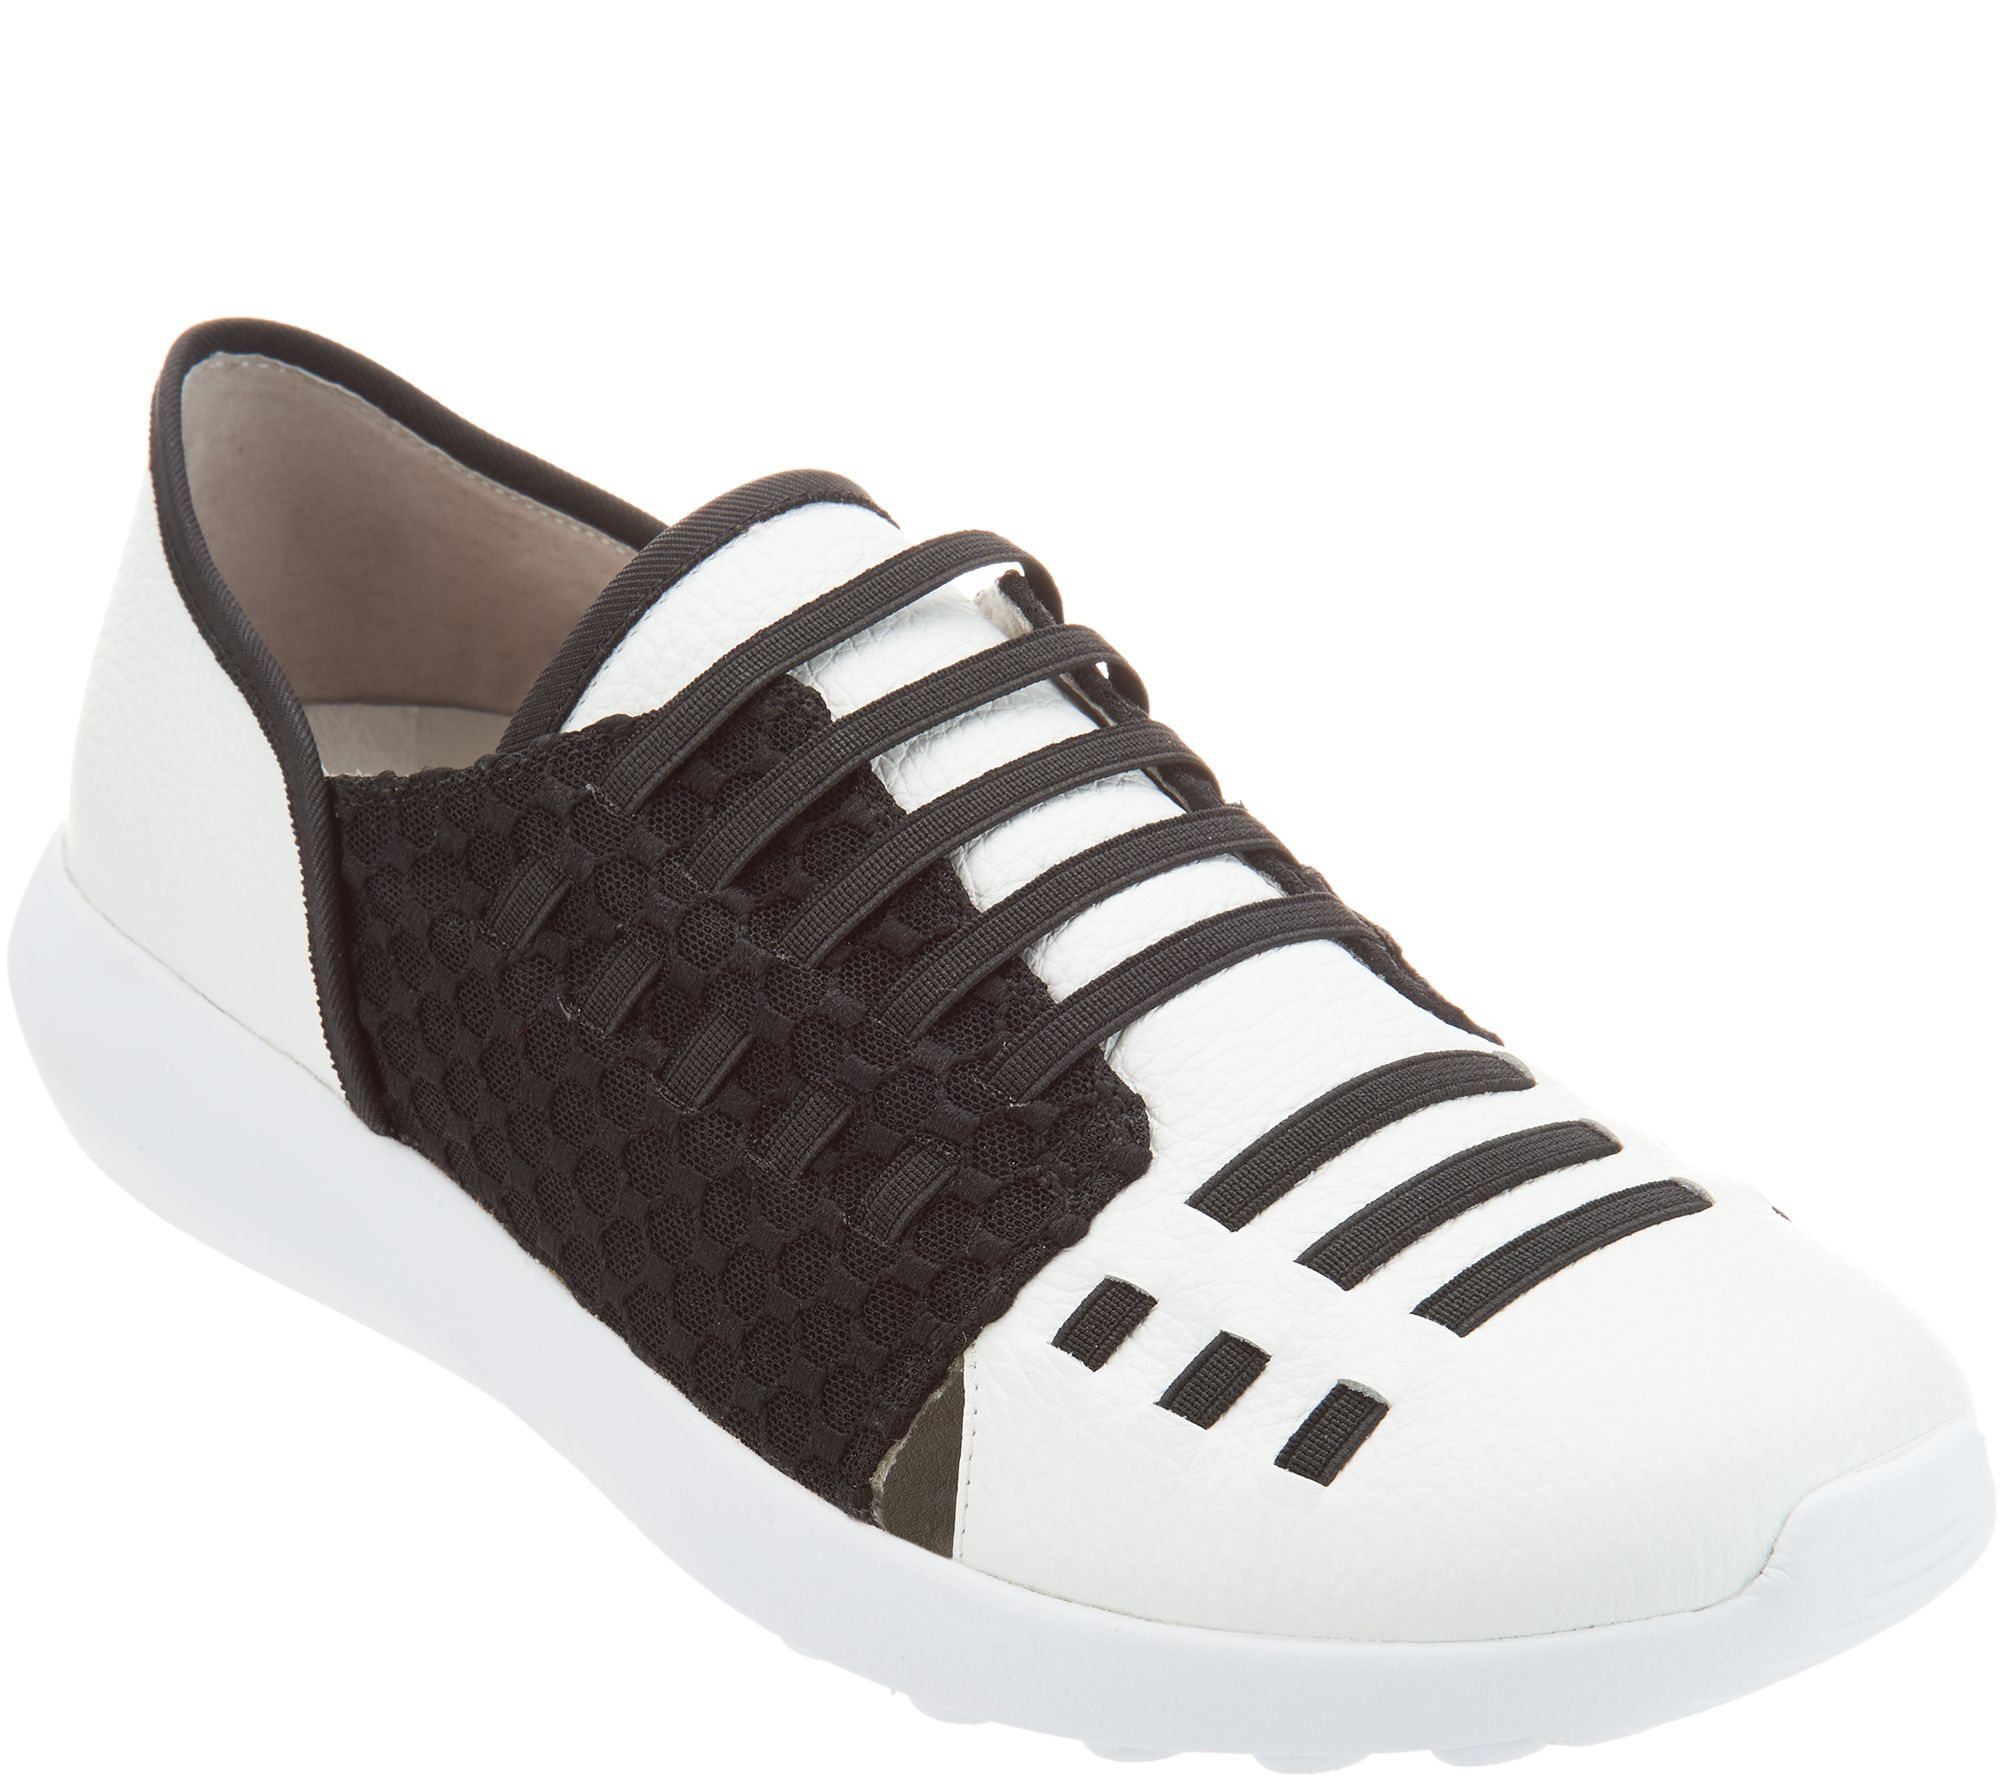 Lori Goldstein Collection Slip On Sneaker with Elastic Laces